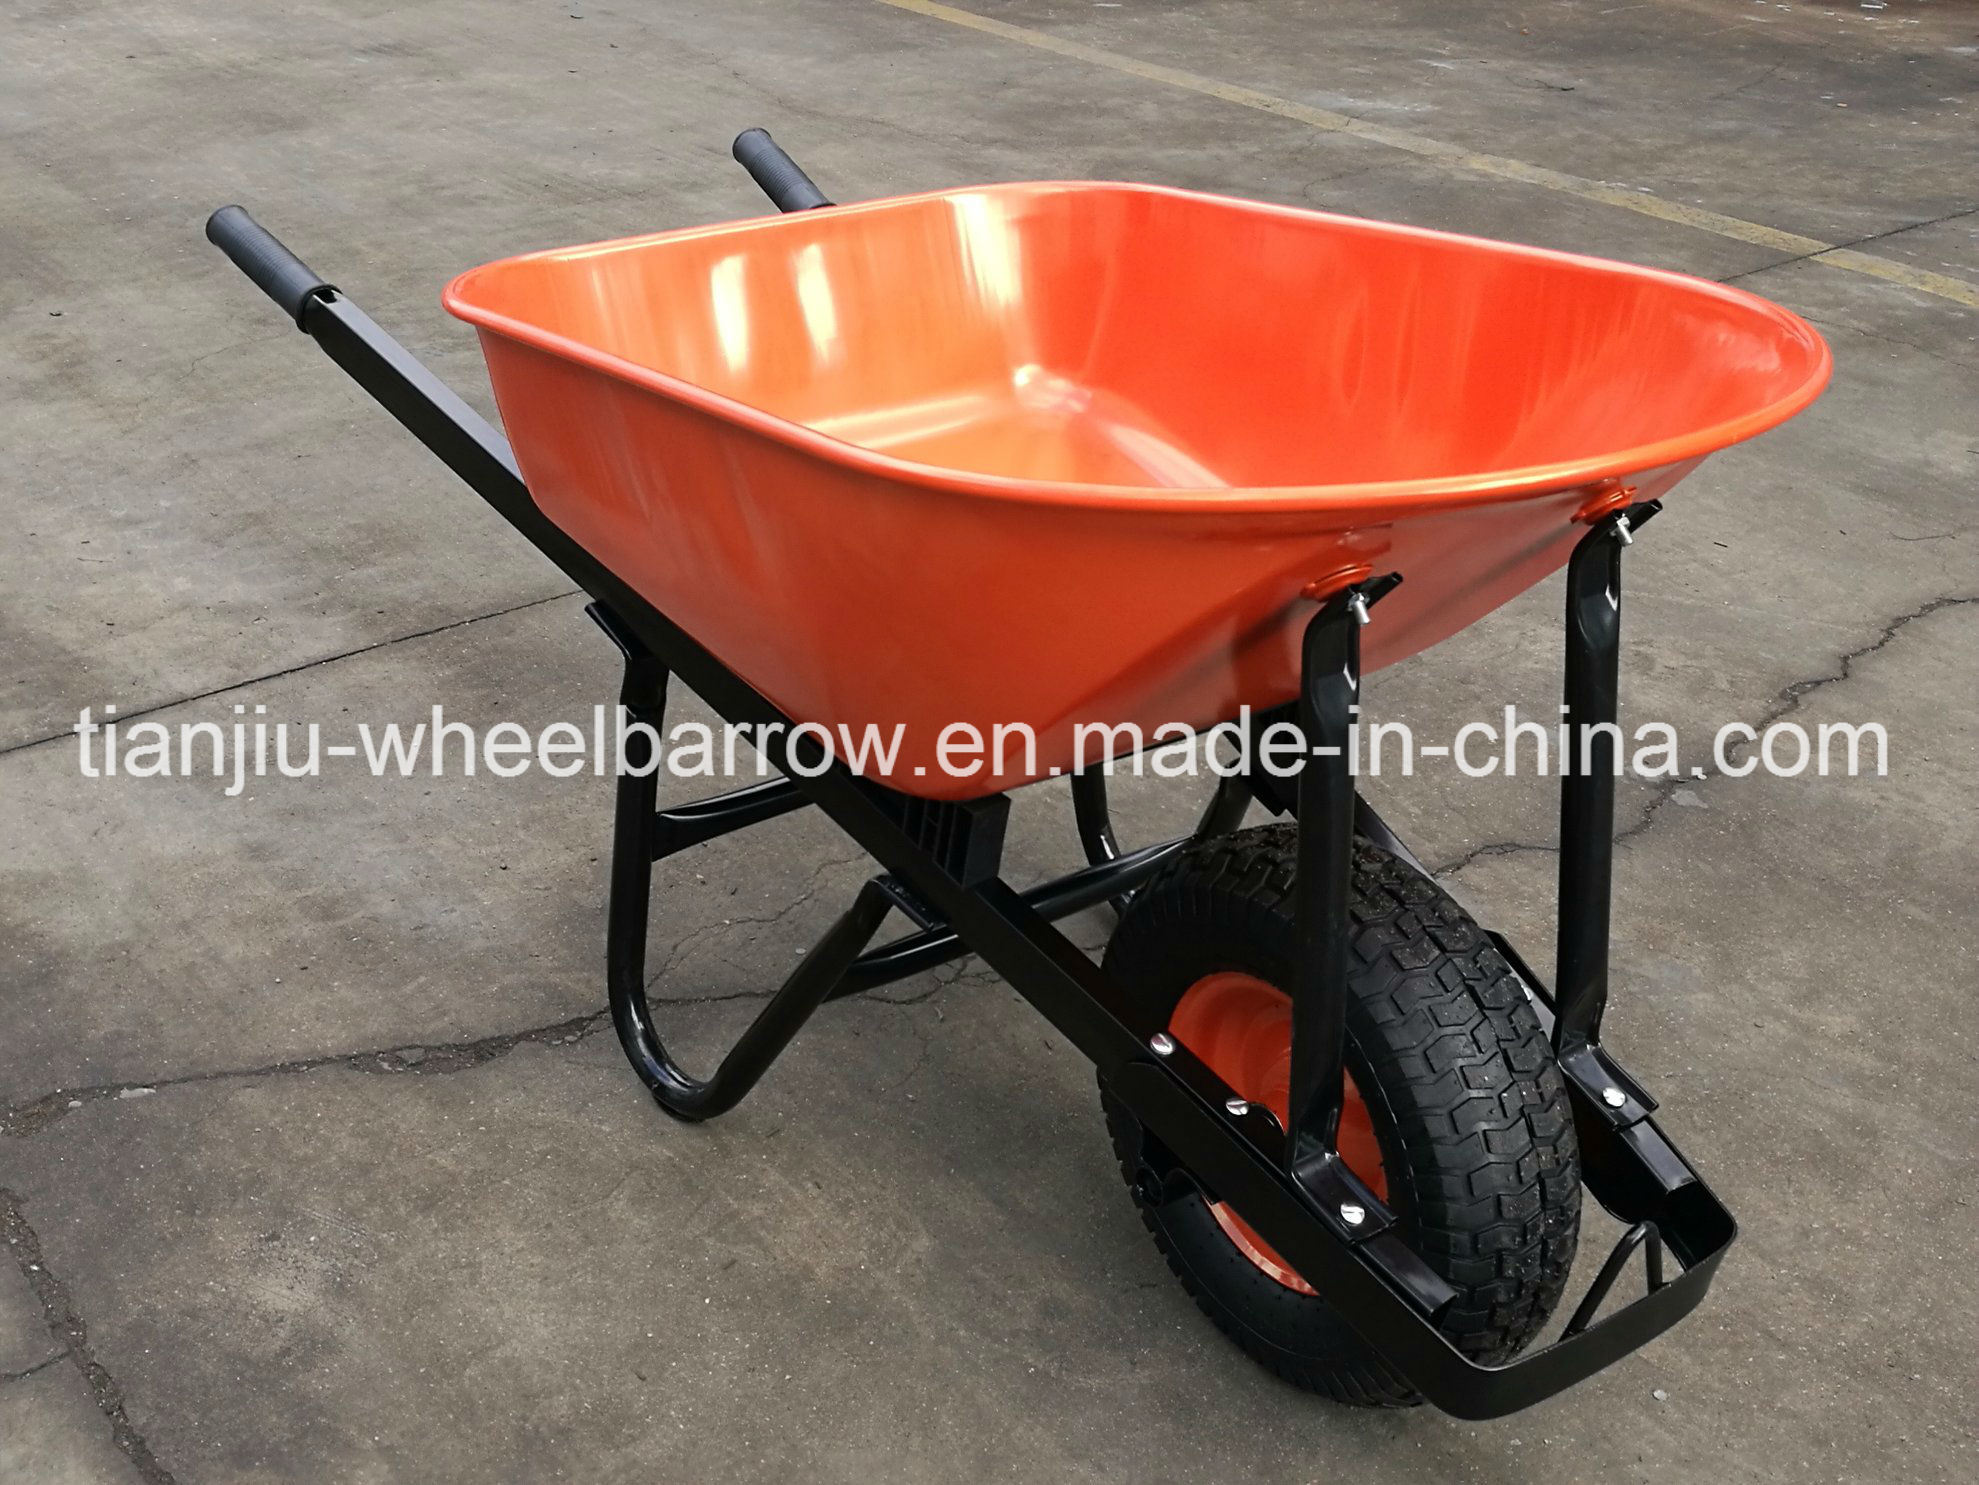 Square Handle for Wheelbarrow/Wheel Barrow Wb8601